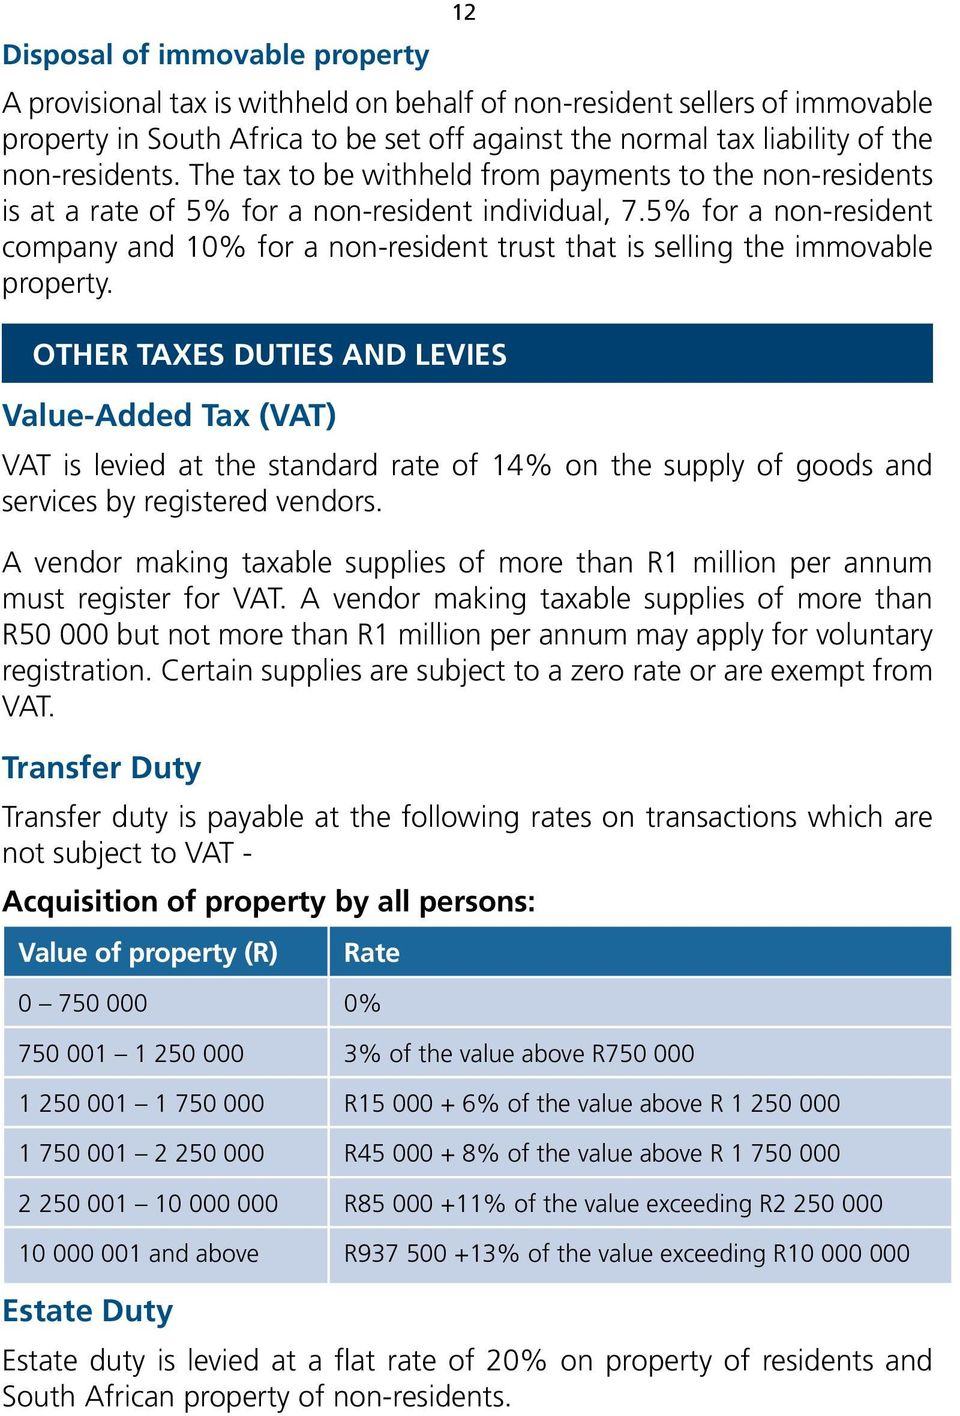 5% for a non-resident company and 10% for a non-resident trust that is selling the immovable property.